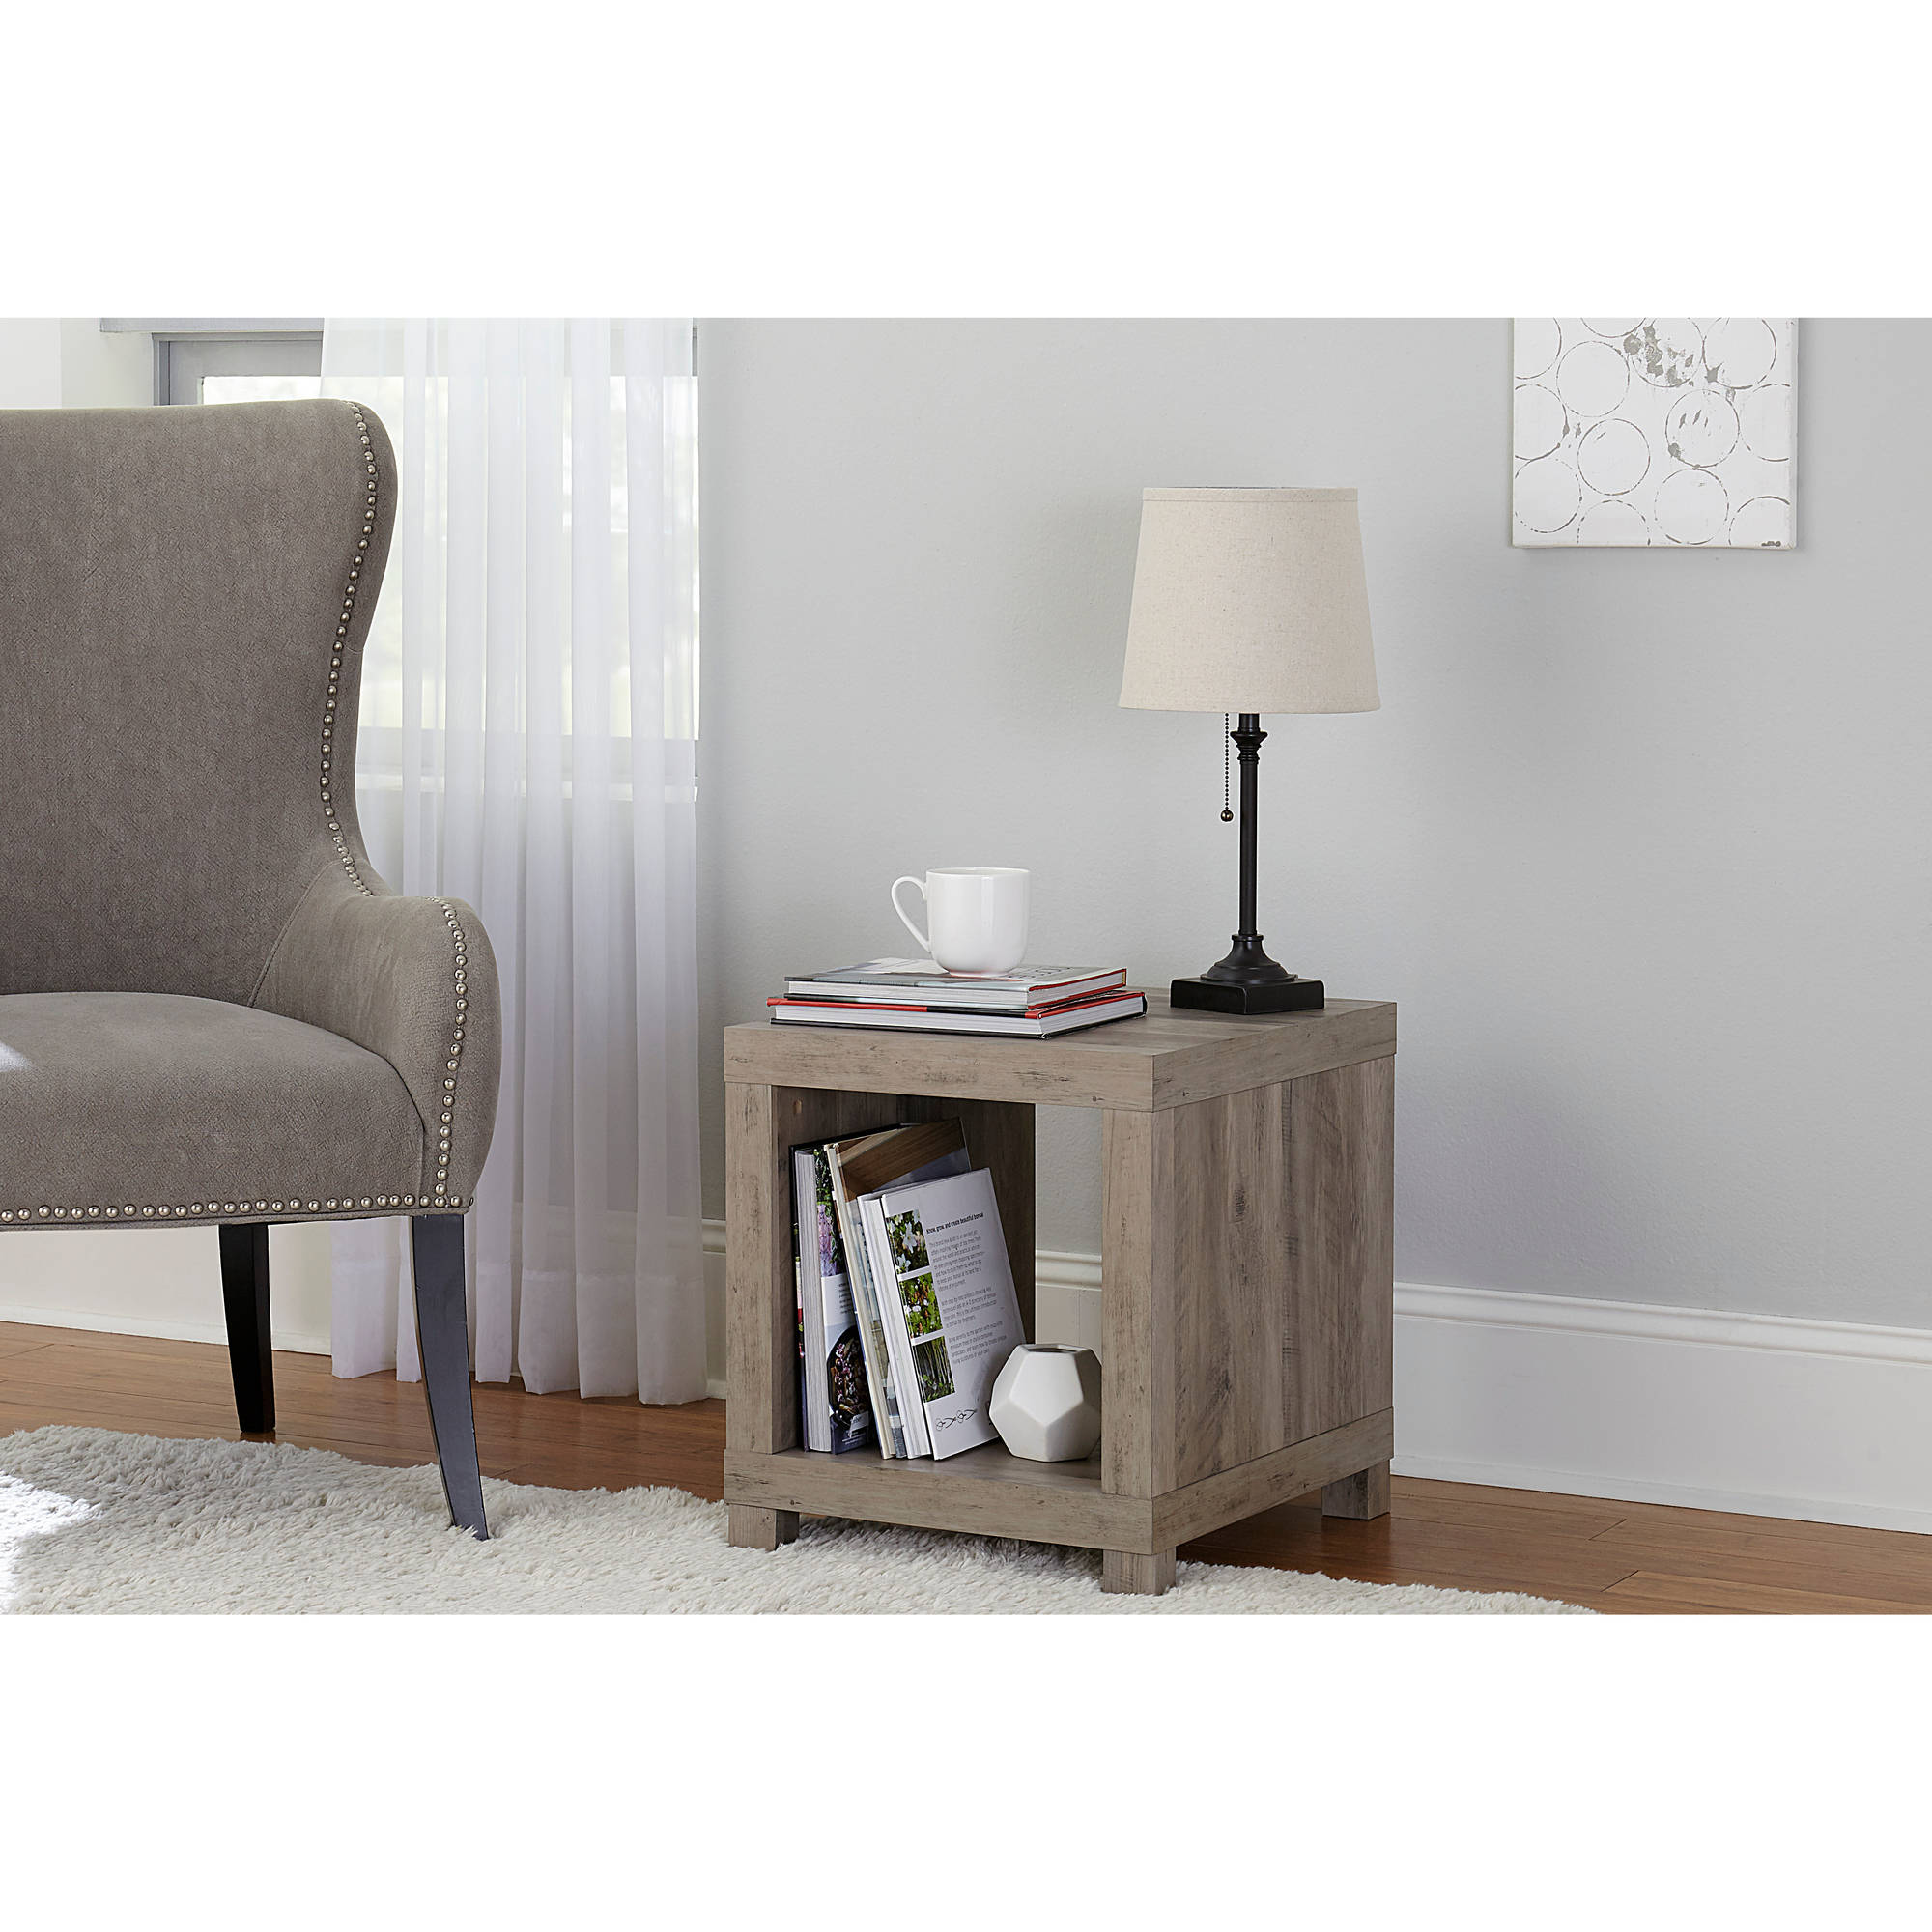 better homes and gardens accent table rustic gray outdoor occasional tables decor cabinets small desk chair antique side with inlay target rugs kitchen chairs pier imports